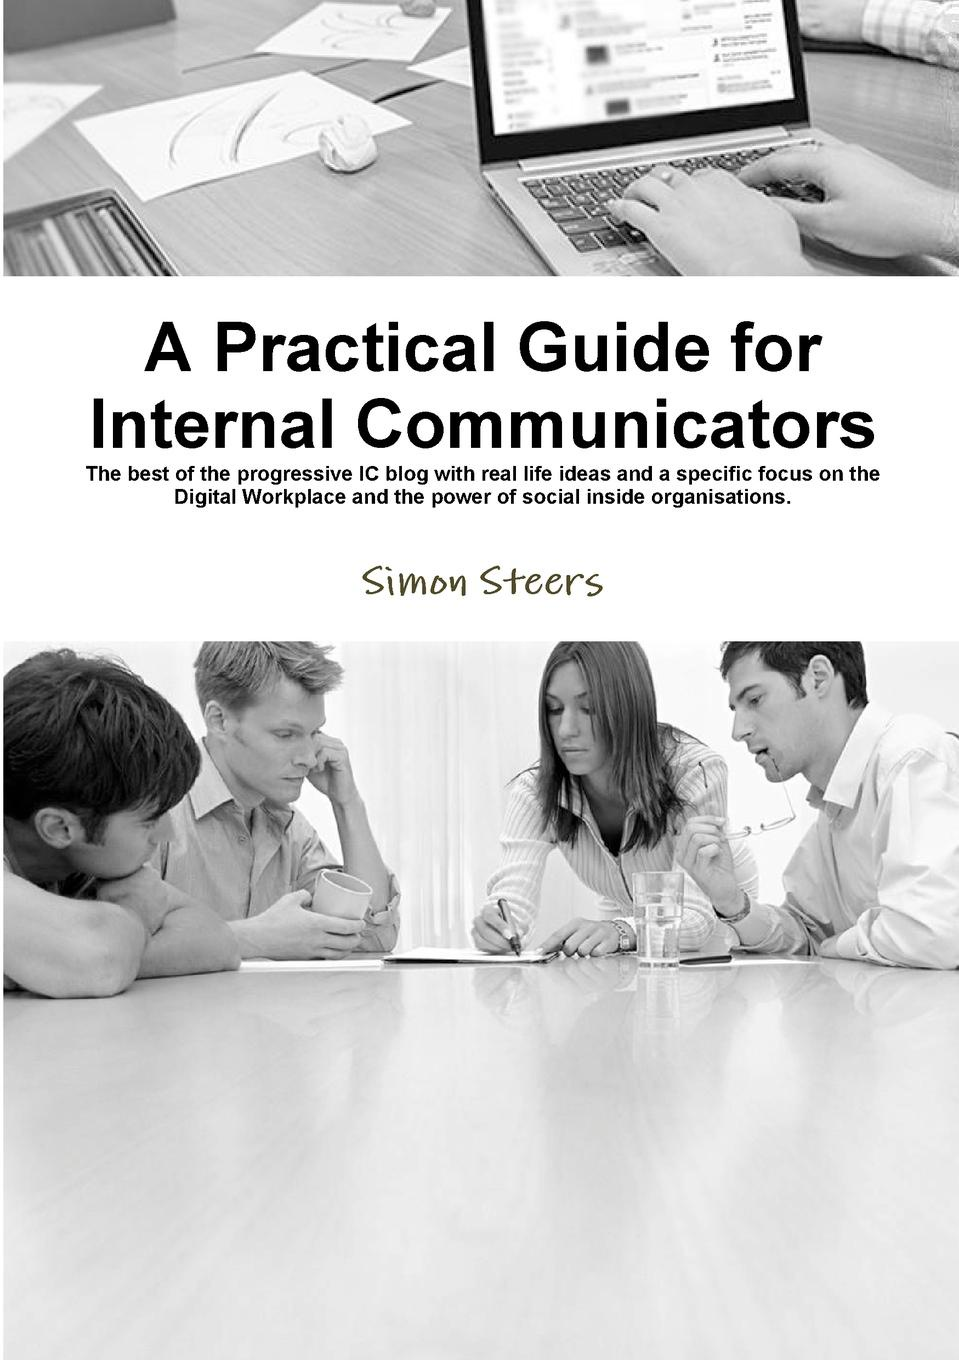 Simon Steers A Practical Guide for Internal Communicators kaylee berry lifestyle blog planner journal lifestyle blogging content planner never run out of things to blog about again